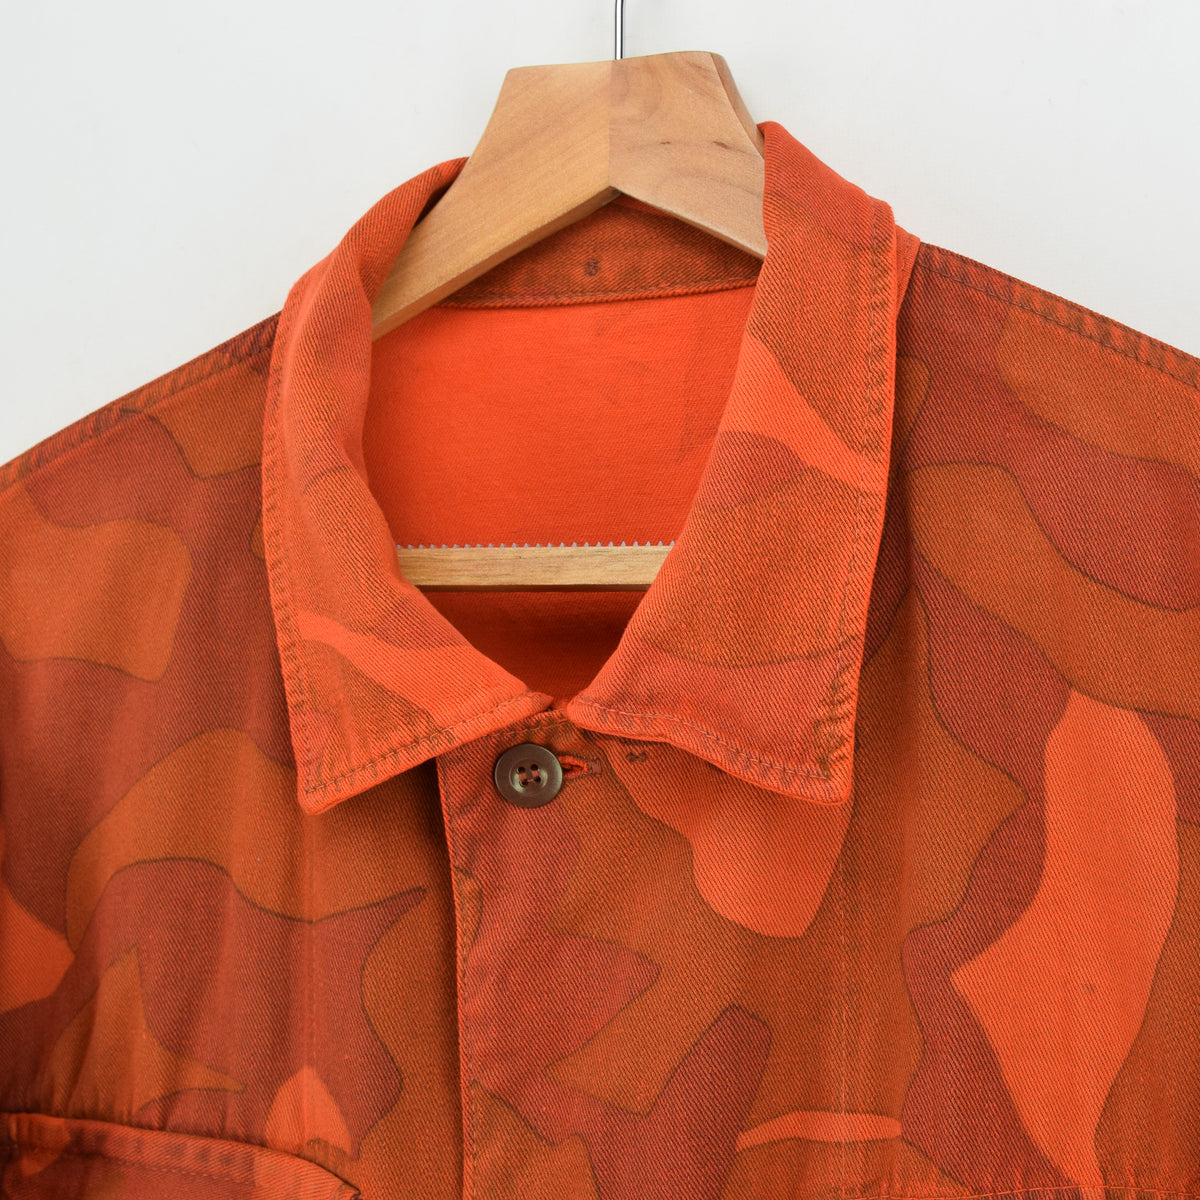 Vintage 70s Military Finnish Army Orange Overdyed Camo Mountain Field Jacket XL collar